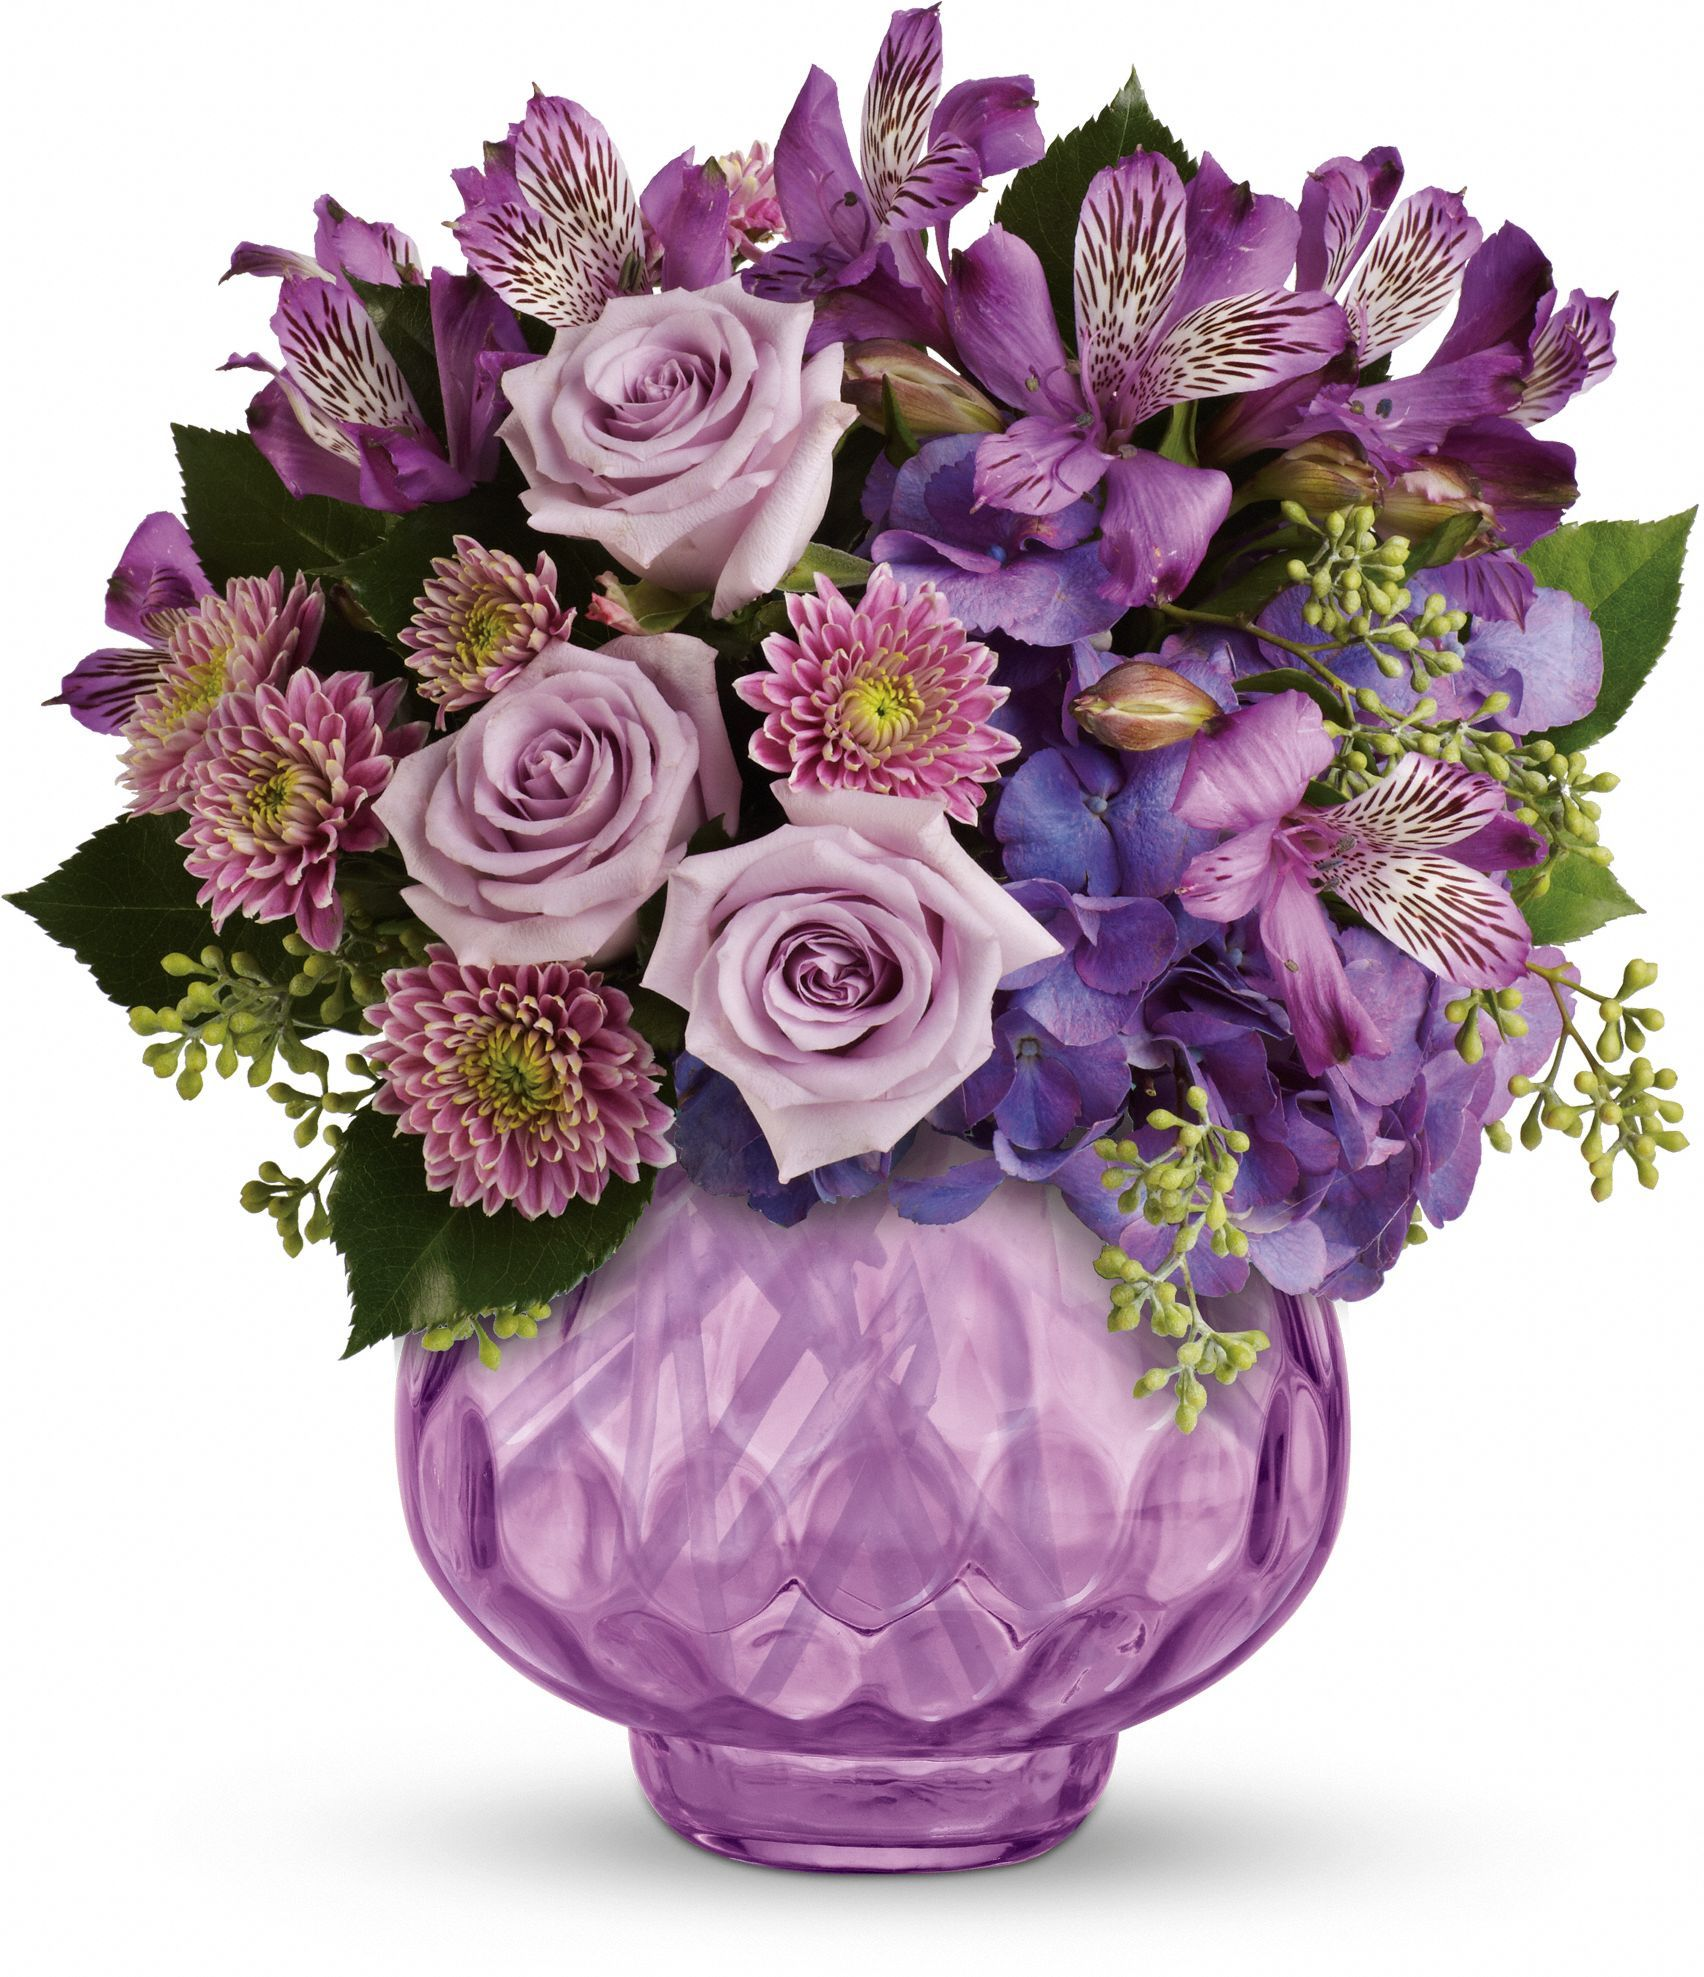 Teleflora's Lush and Lavender with Roses Birthday